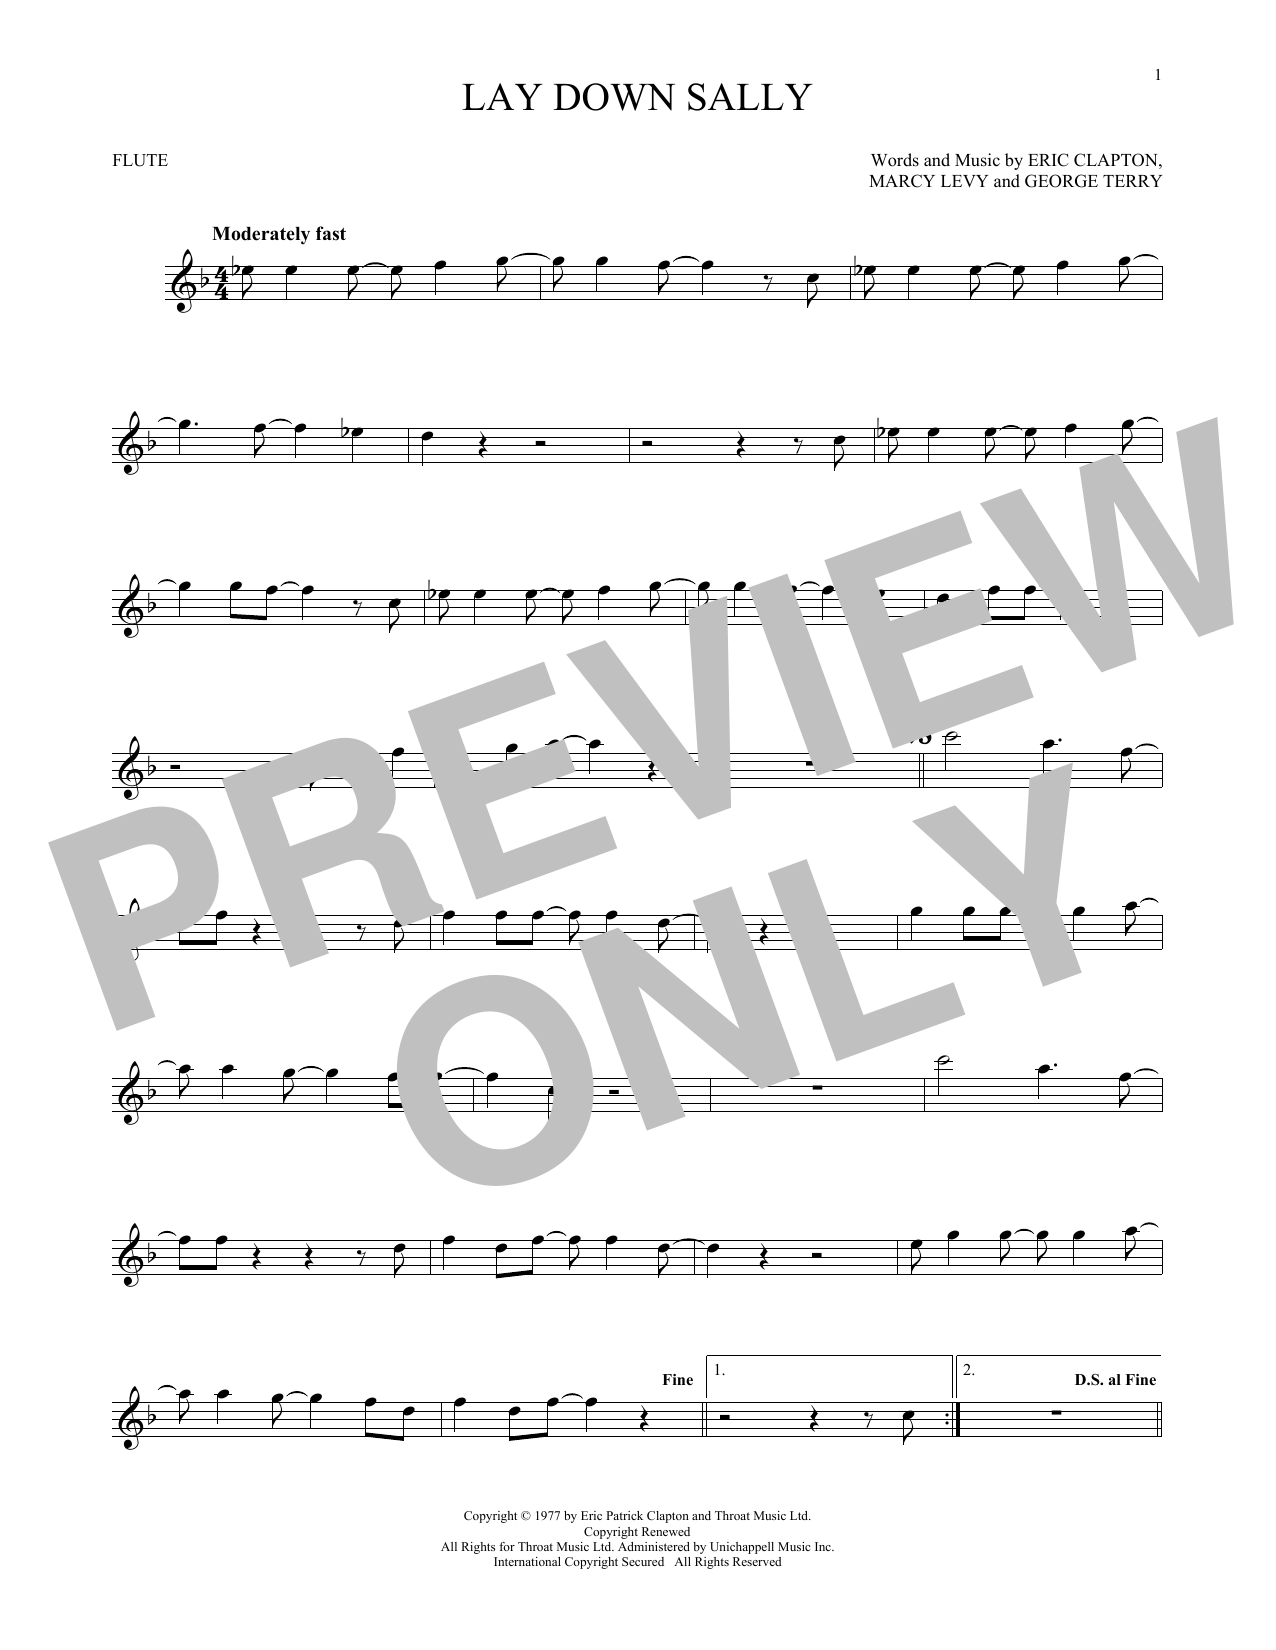 Lay Down Sally (Flute Solo)